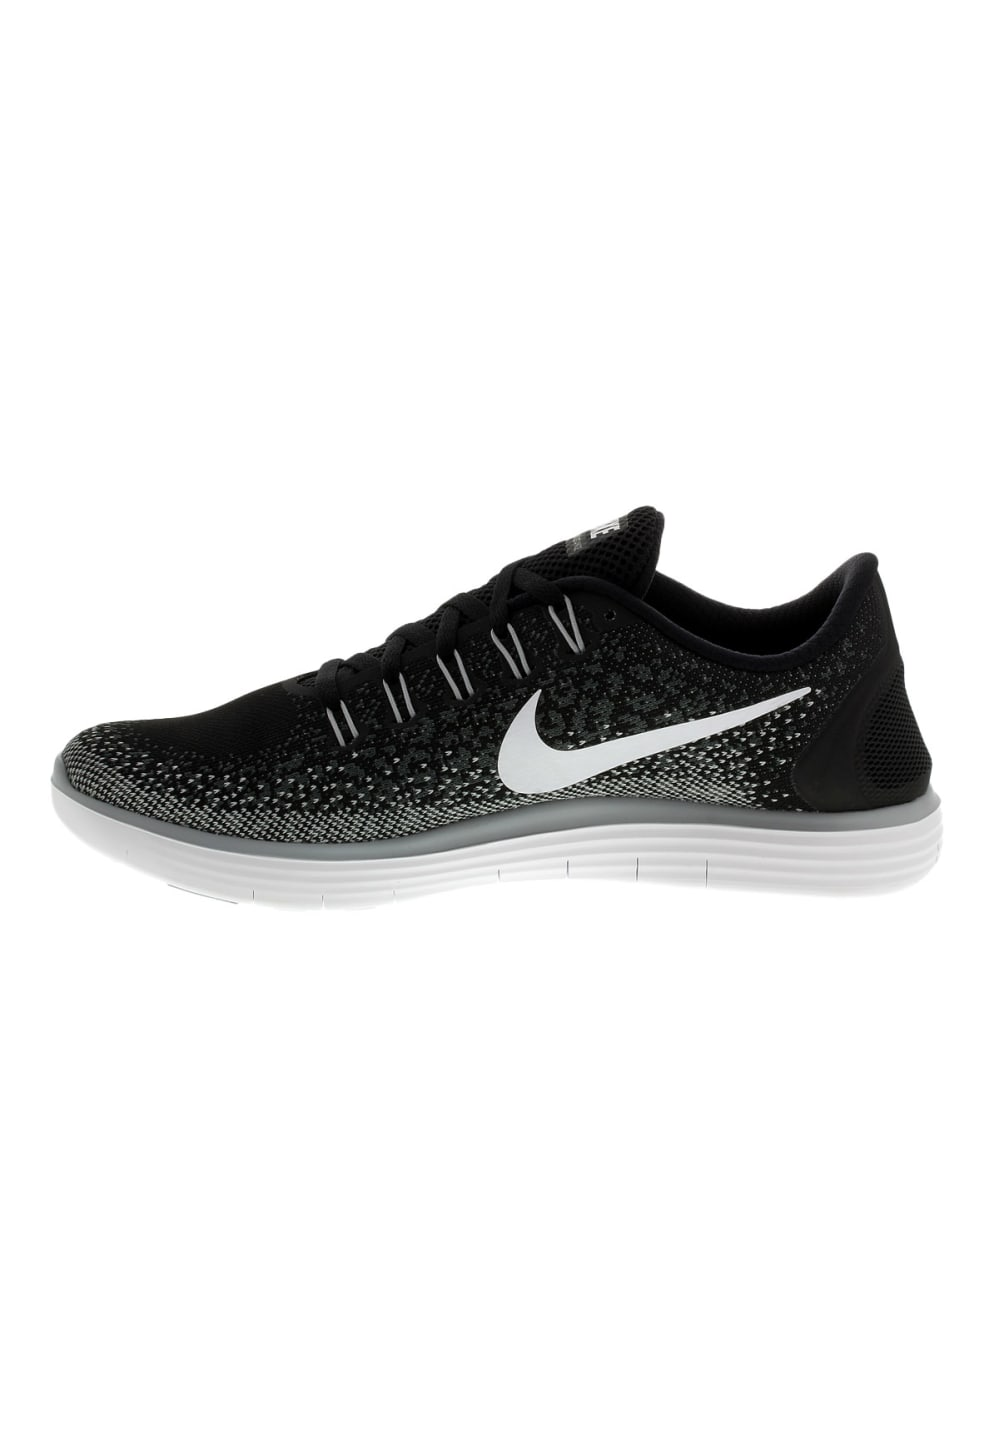 best service ff0d4 2fdac Previous. Next. -70%. Nike. Free Run Distance - Chaussures running pour  Femme